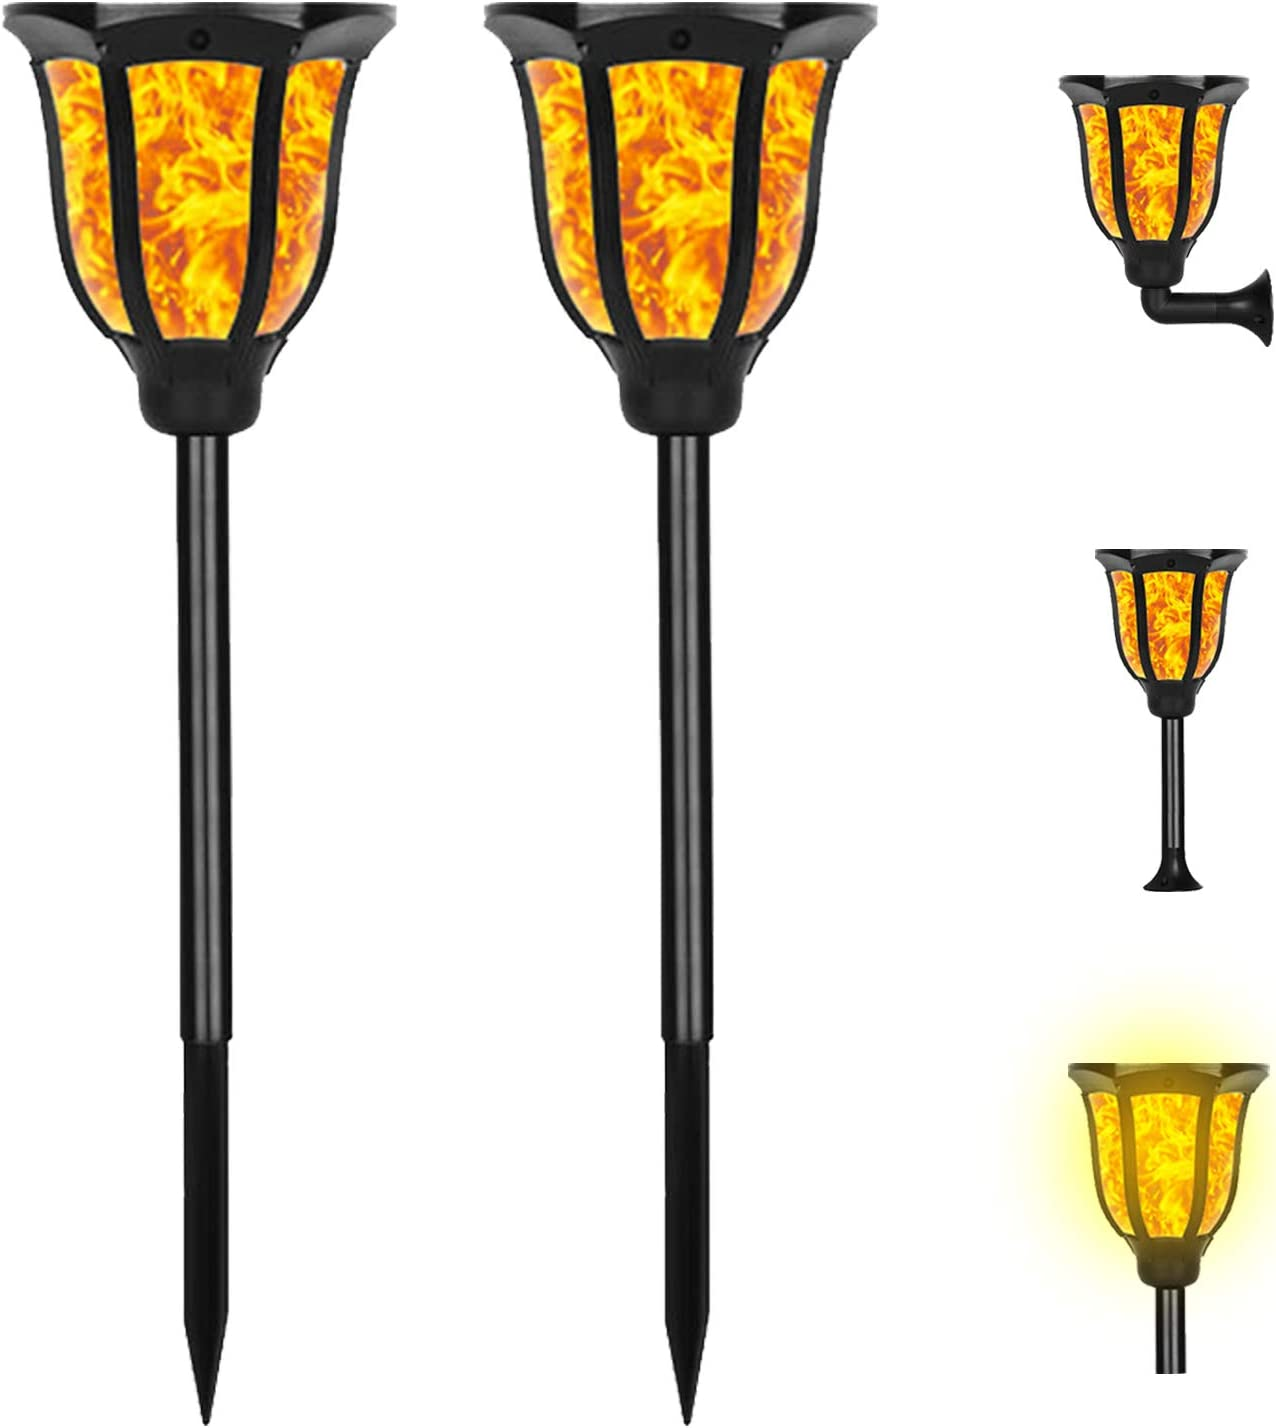 Solar Torch Lights, Outdoor Flame Solar Lights with Flickering Dancing Flames, 3 in 1 Waterproof Landscape Light Auto On/Off for Garden Patio Pool Yard Driveway Pathway